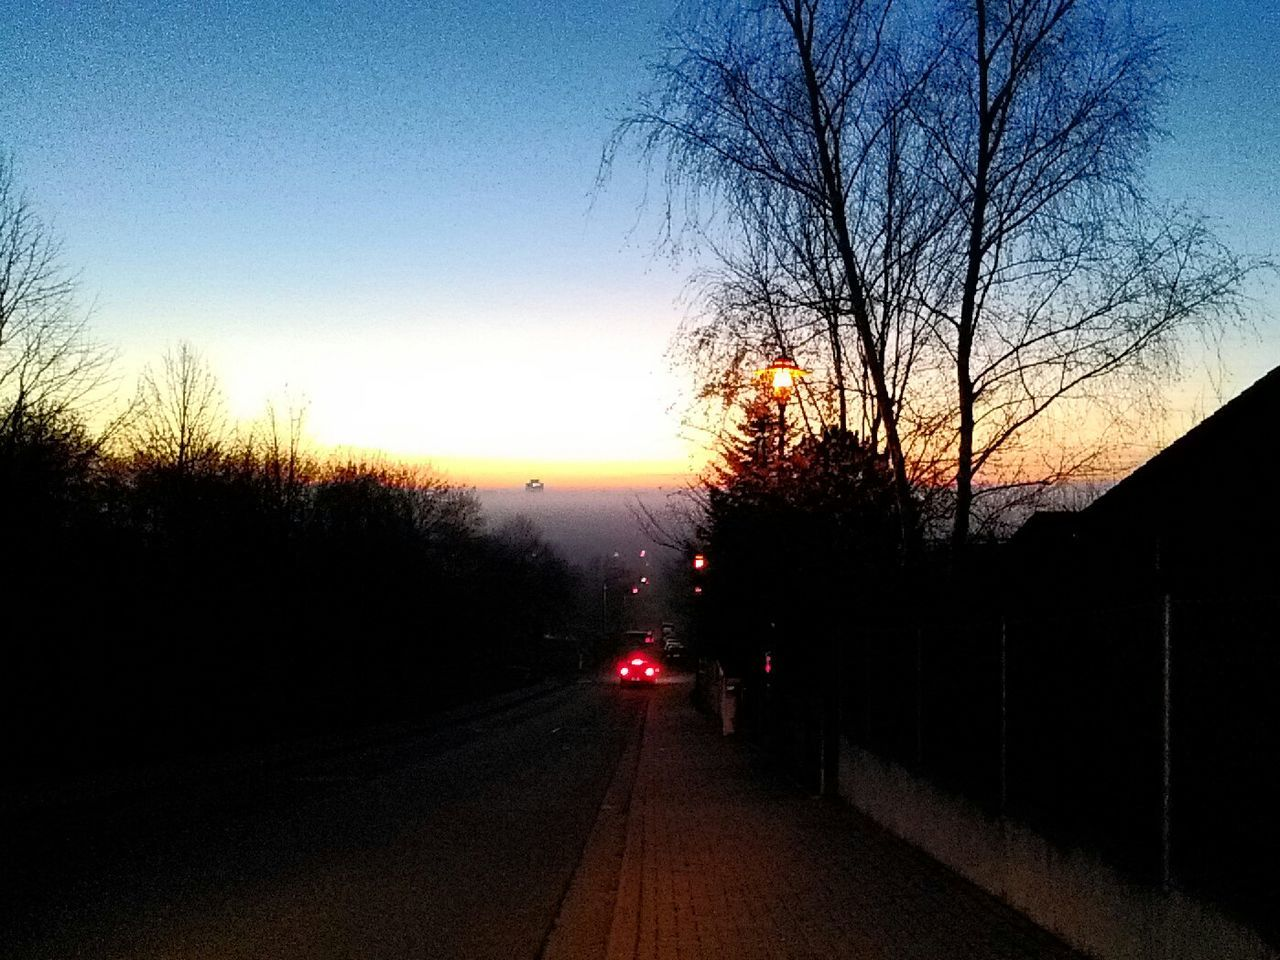 bare tree, tree, sunset, sky, no people, the way forward, car, road, outdoors, branch, clear sky, nature, beauty in nature, day